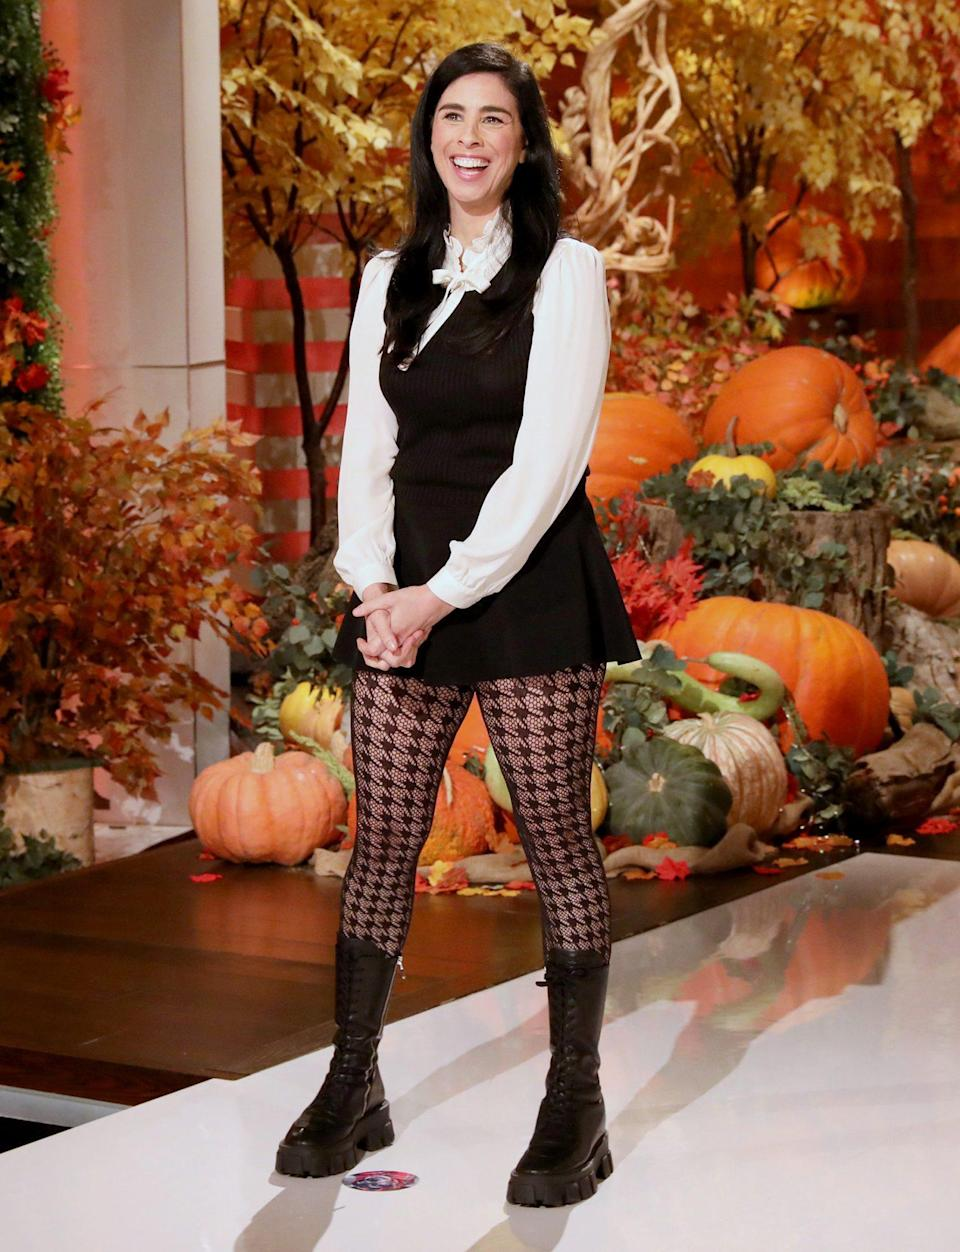 <p>Sarah Silverman fills in as guest host on Monday's episode of <i>The Ellen DeGeneres Show</i> in Burbank, California. </p>